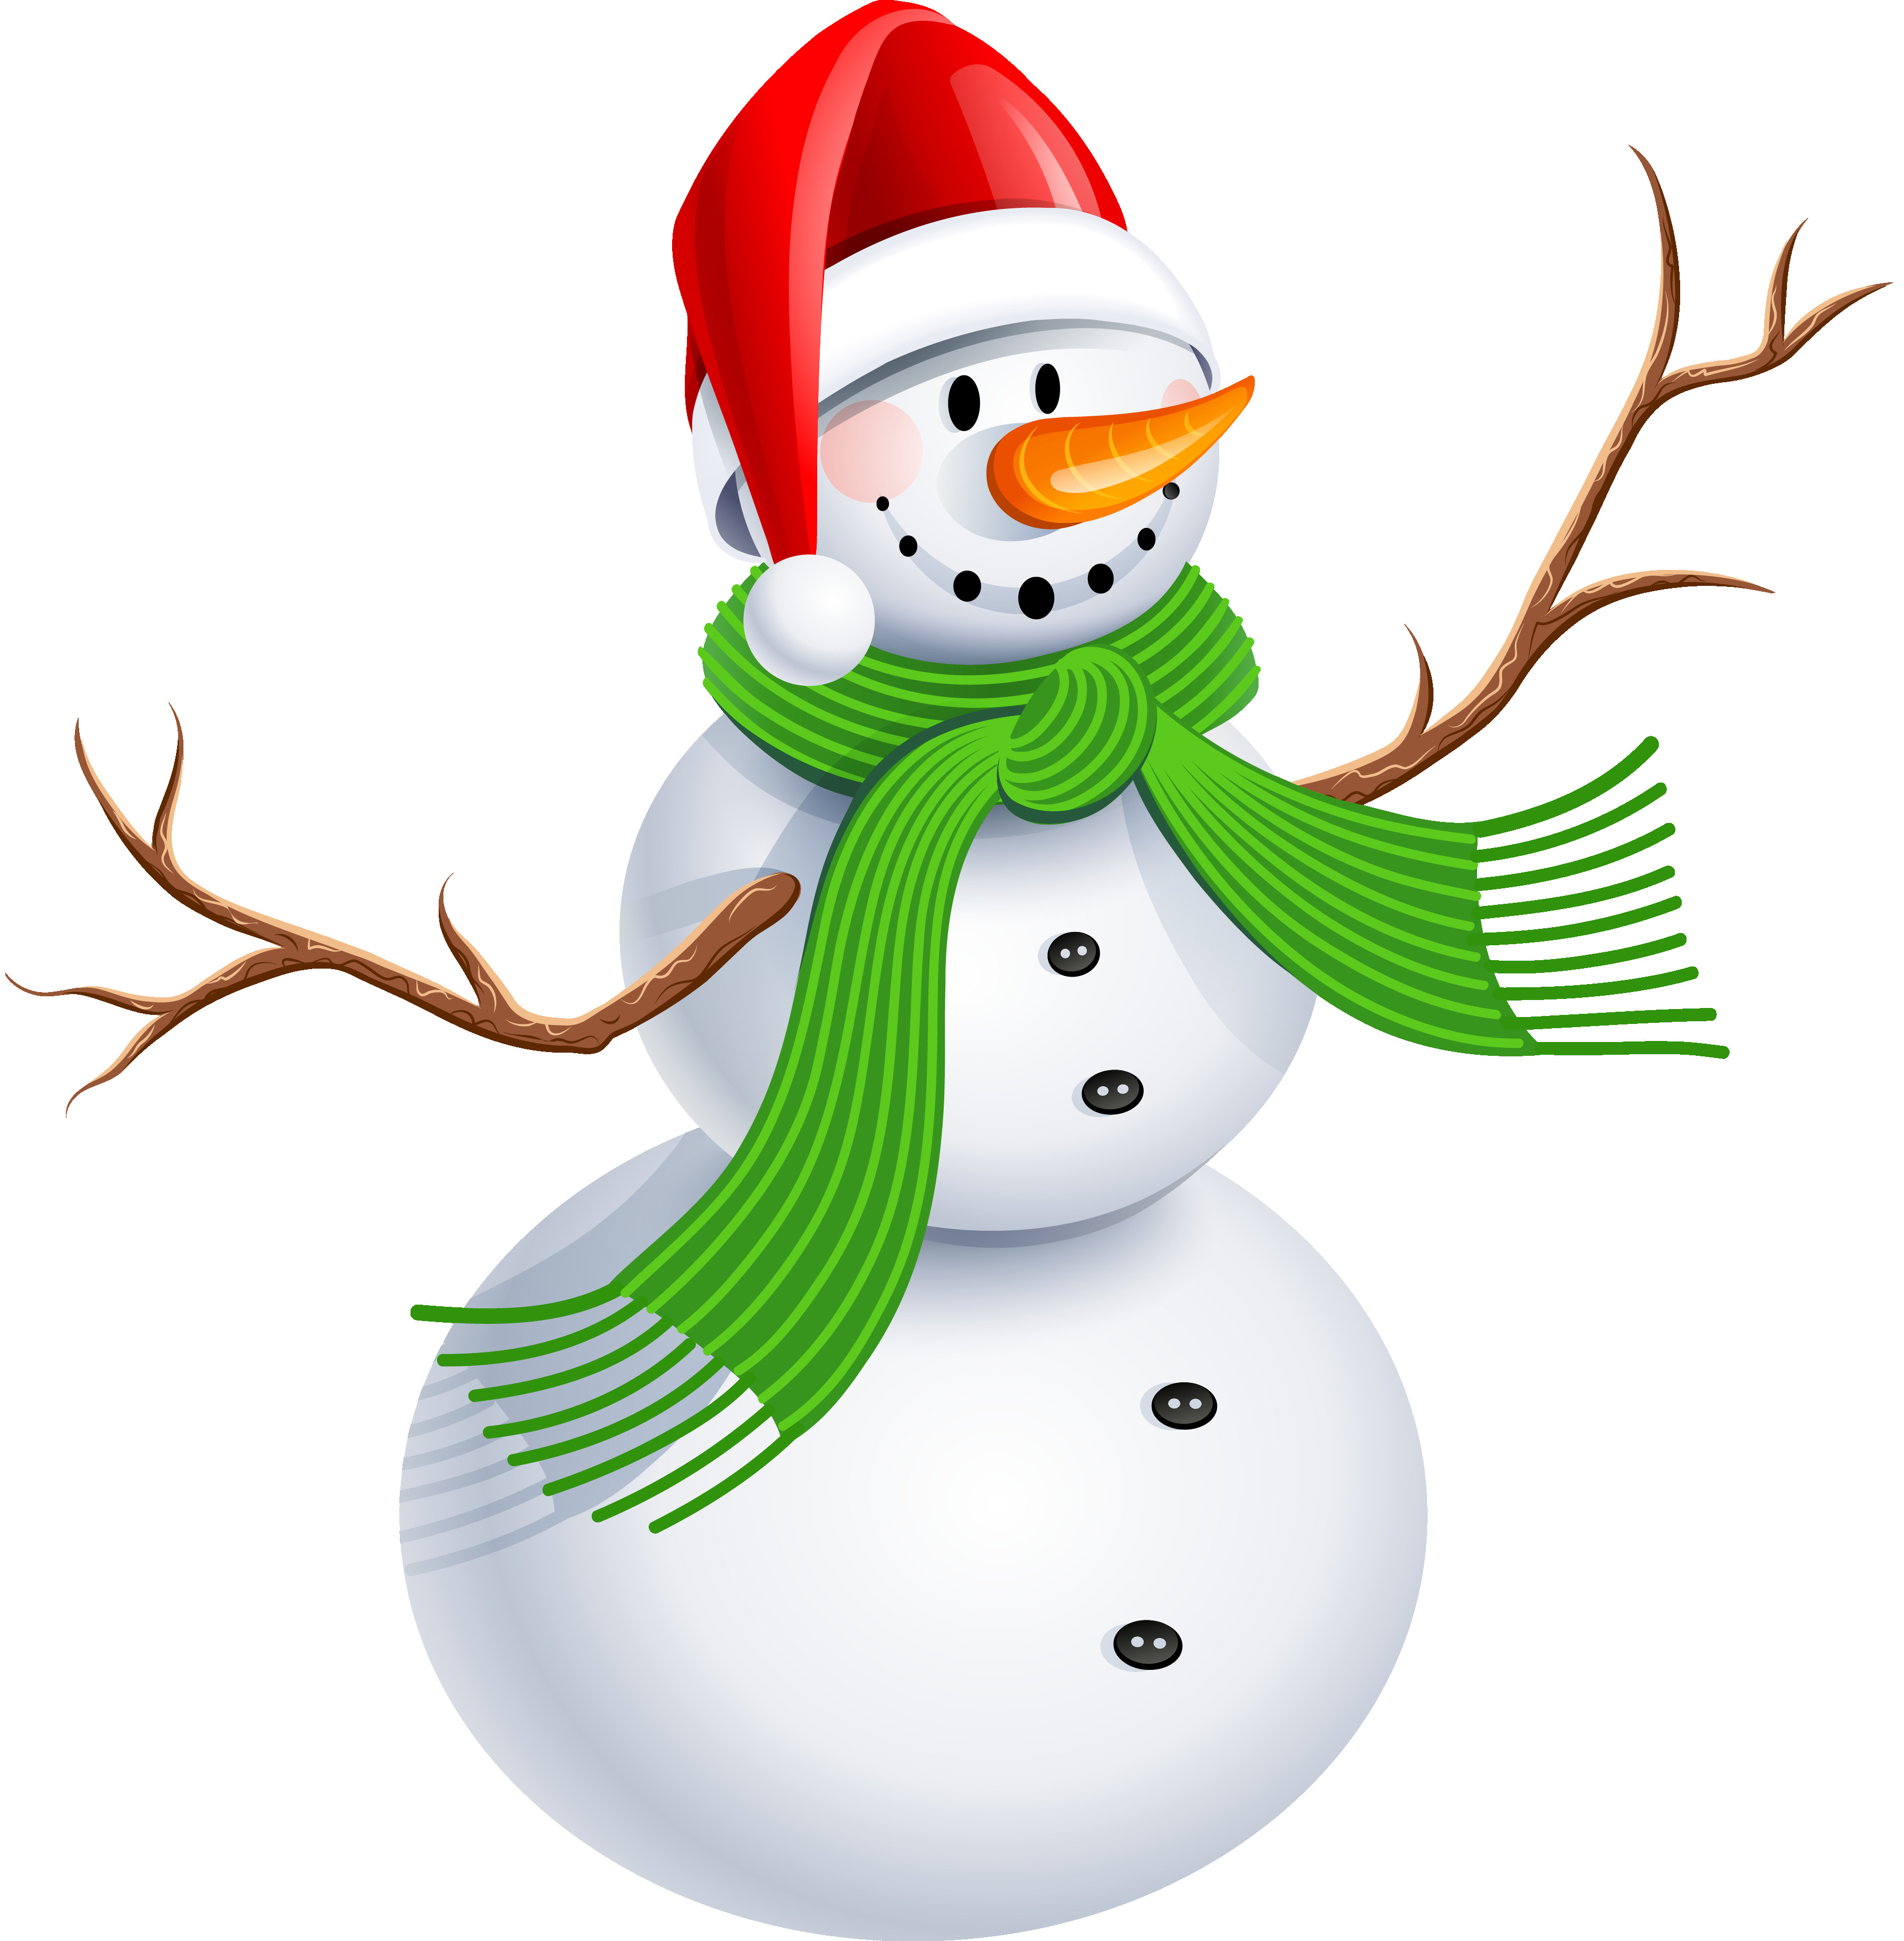 3581x3651 Snowman With Green Scarf Png Clipart Picture Gallery Unbelievable